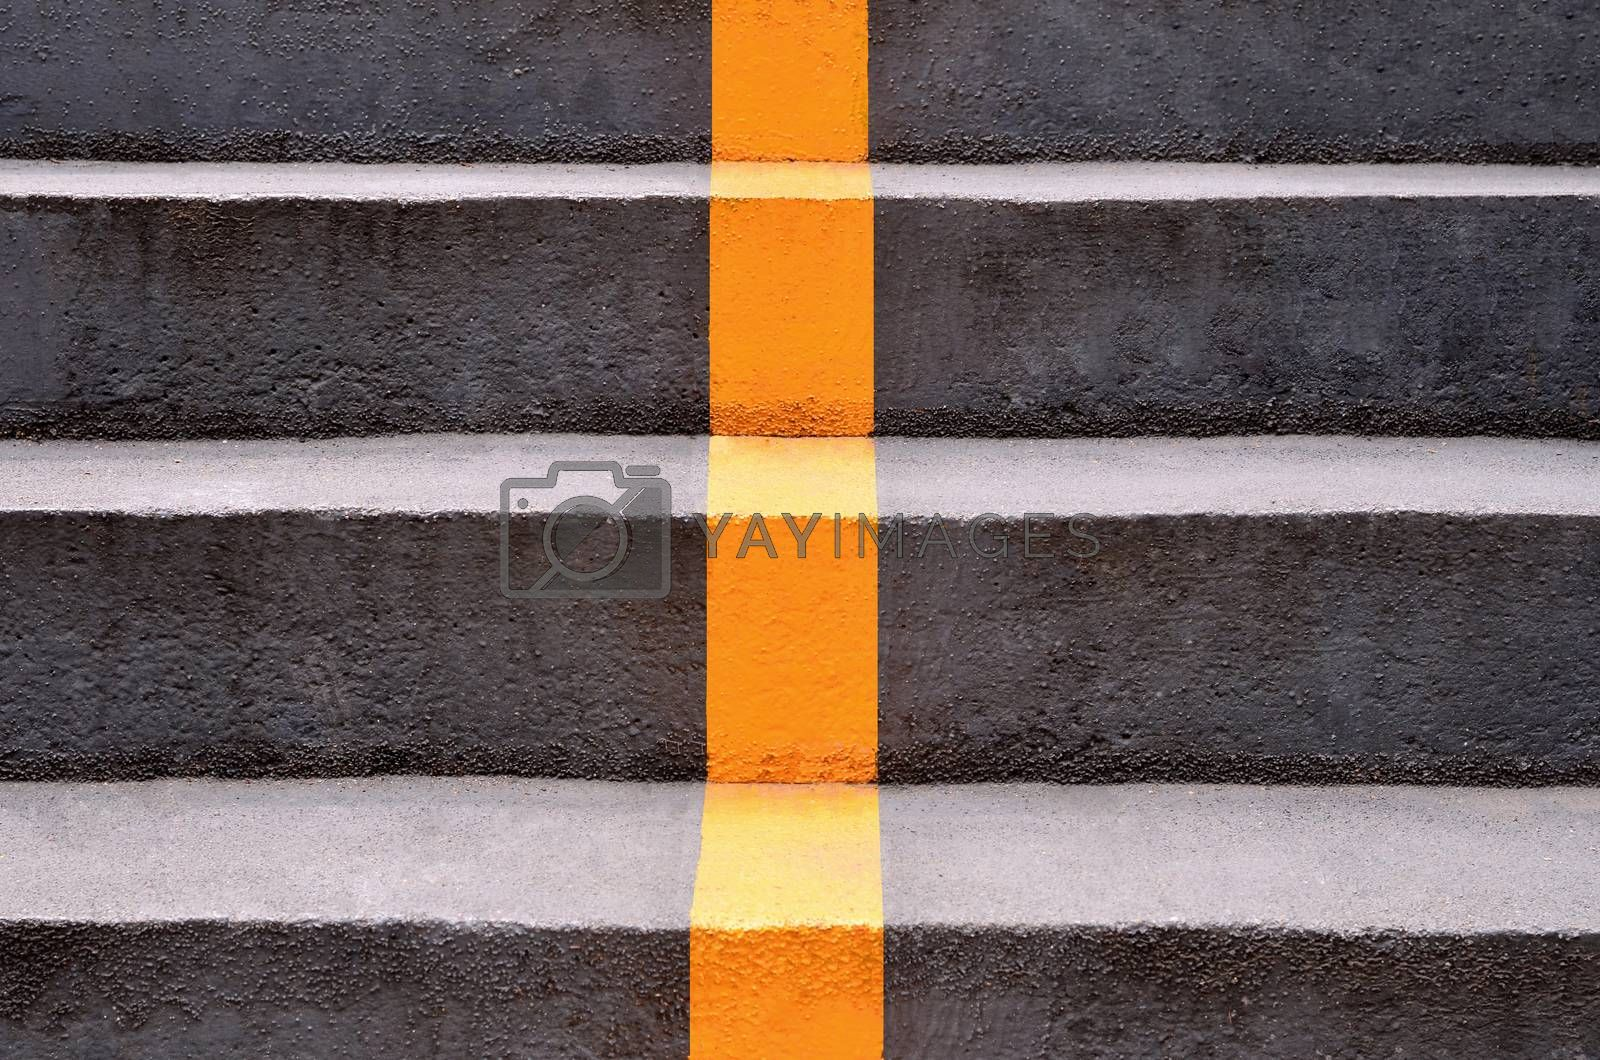 concrete stairs with yellow lines dividing the way down.